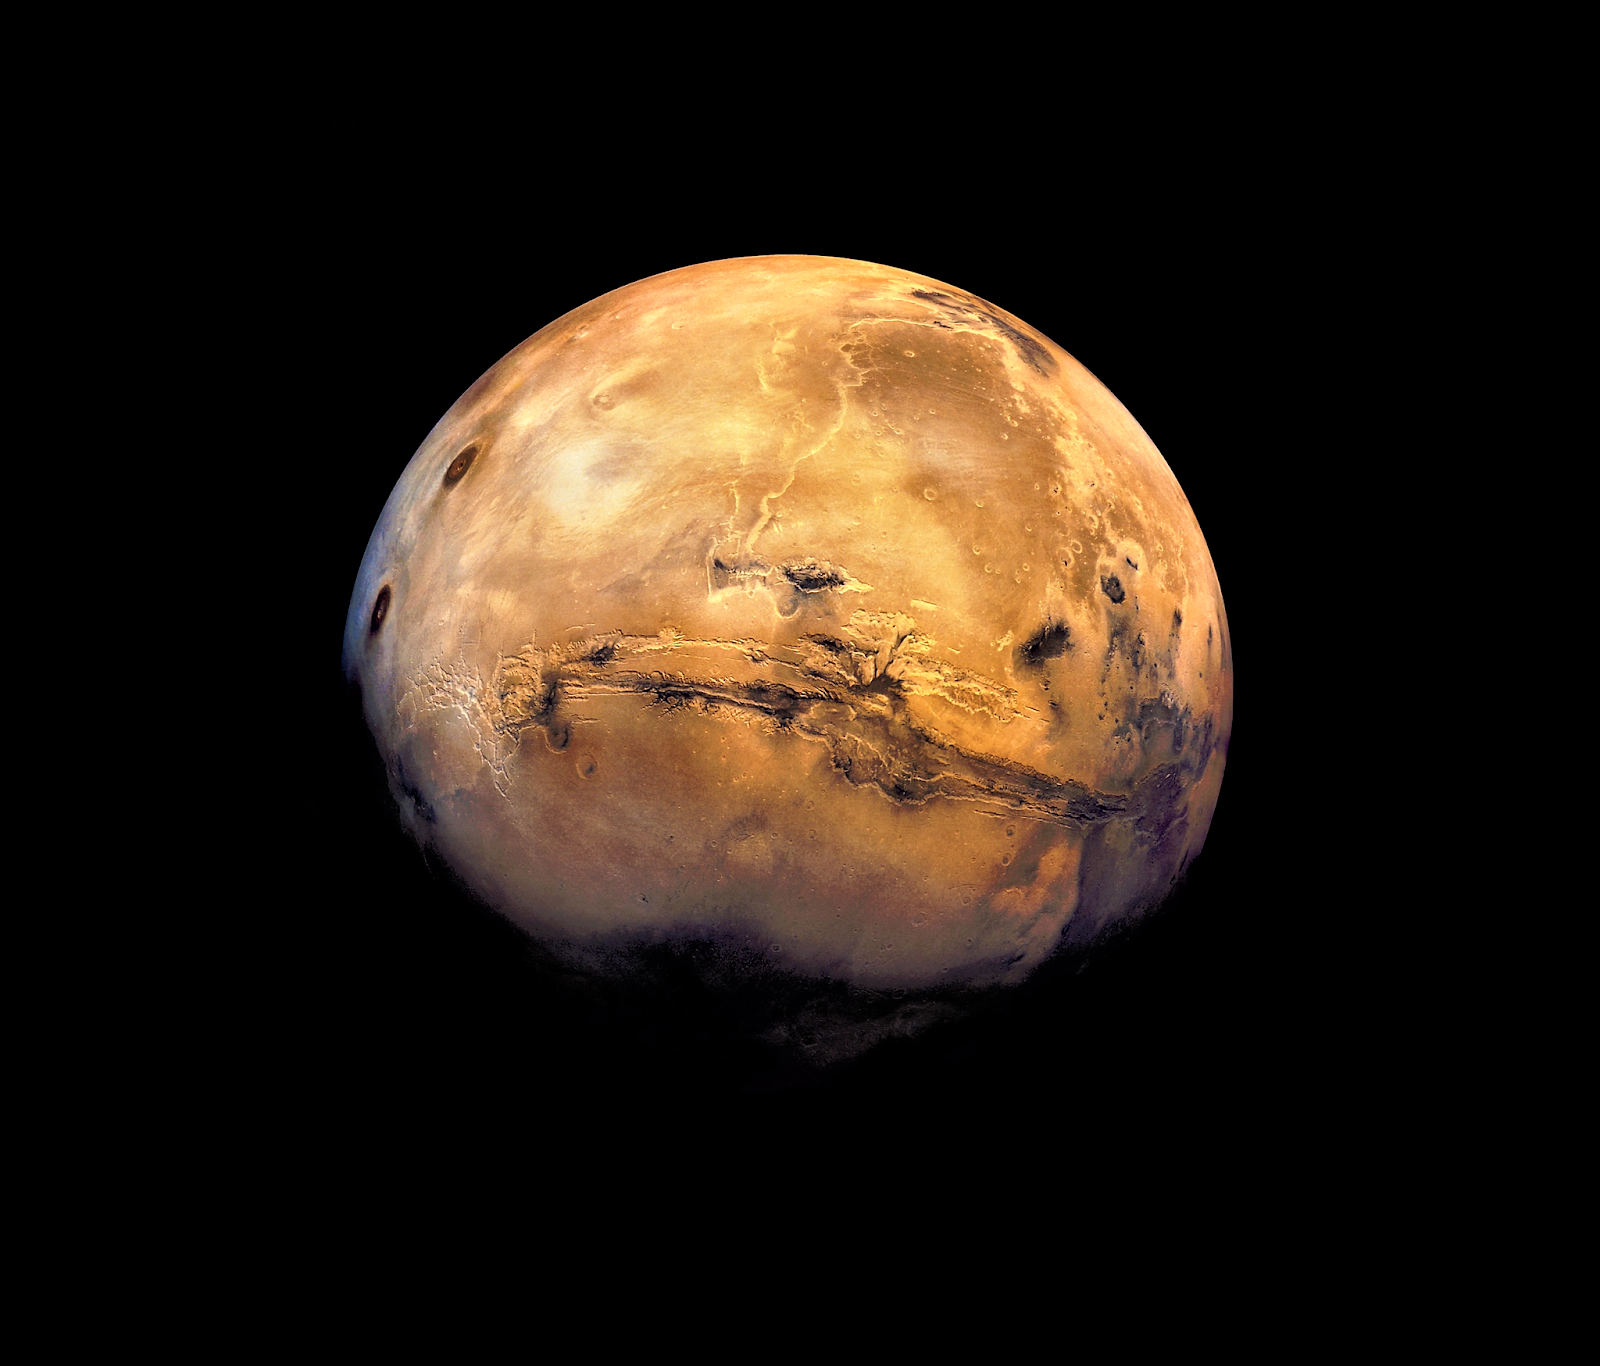 Mars 2020,  NASA discovered possible evidence of life on Mars